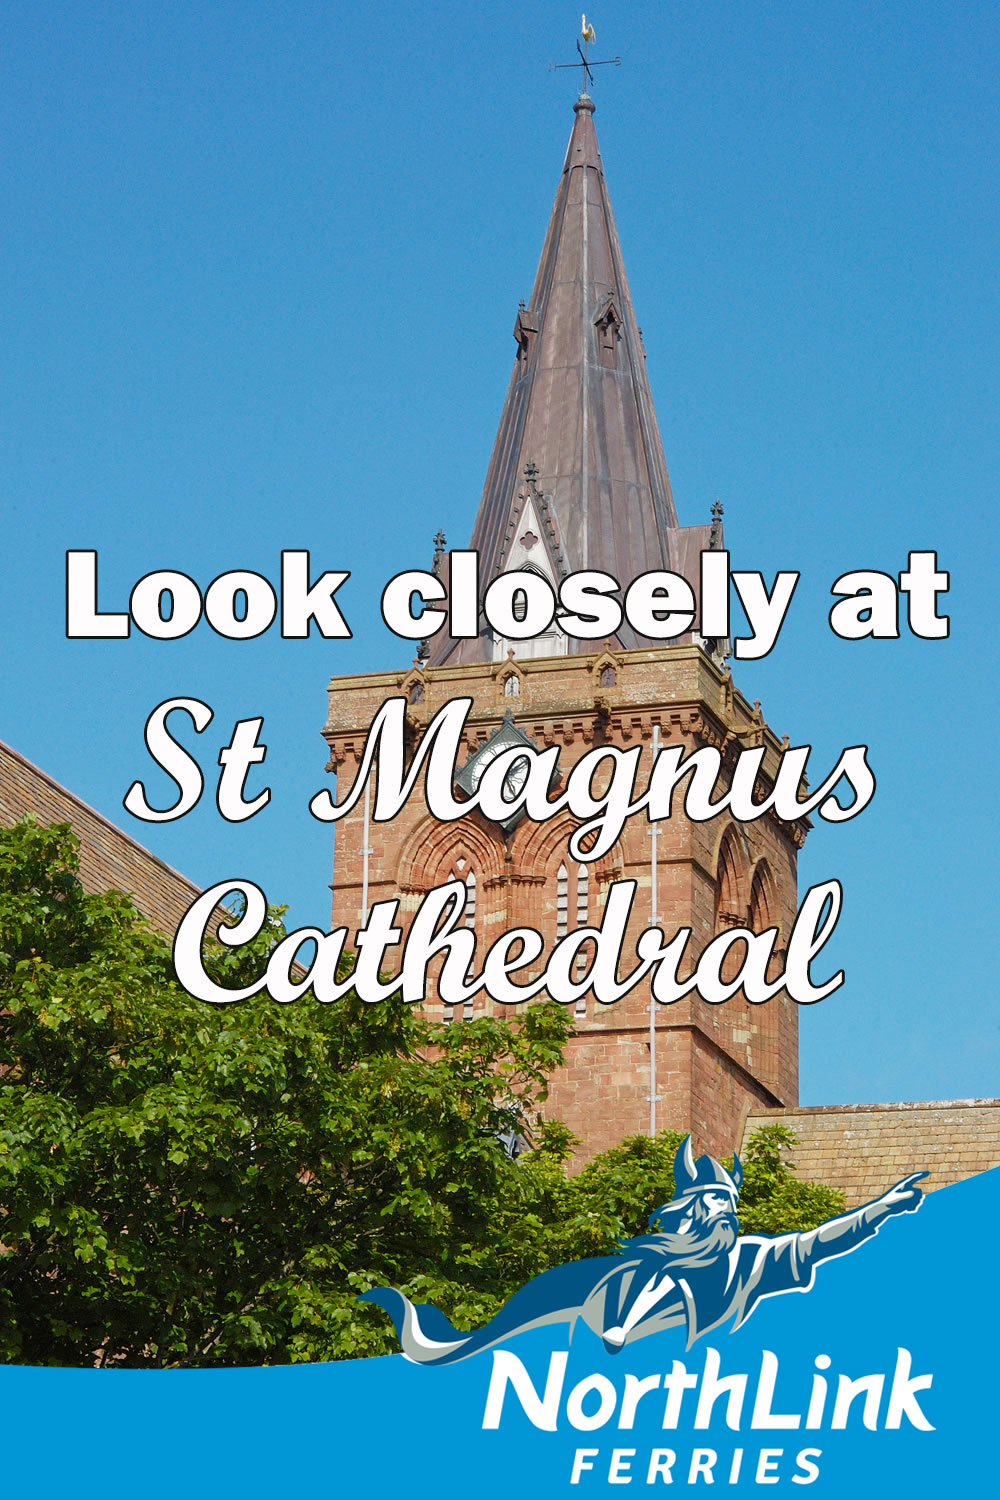 Look closely at St Magnus Cathedral